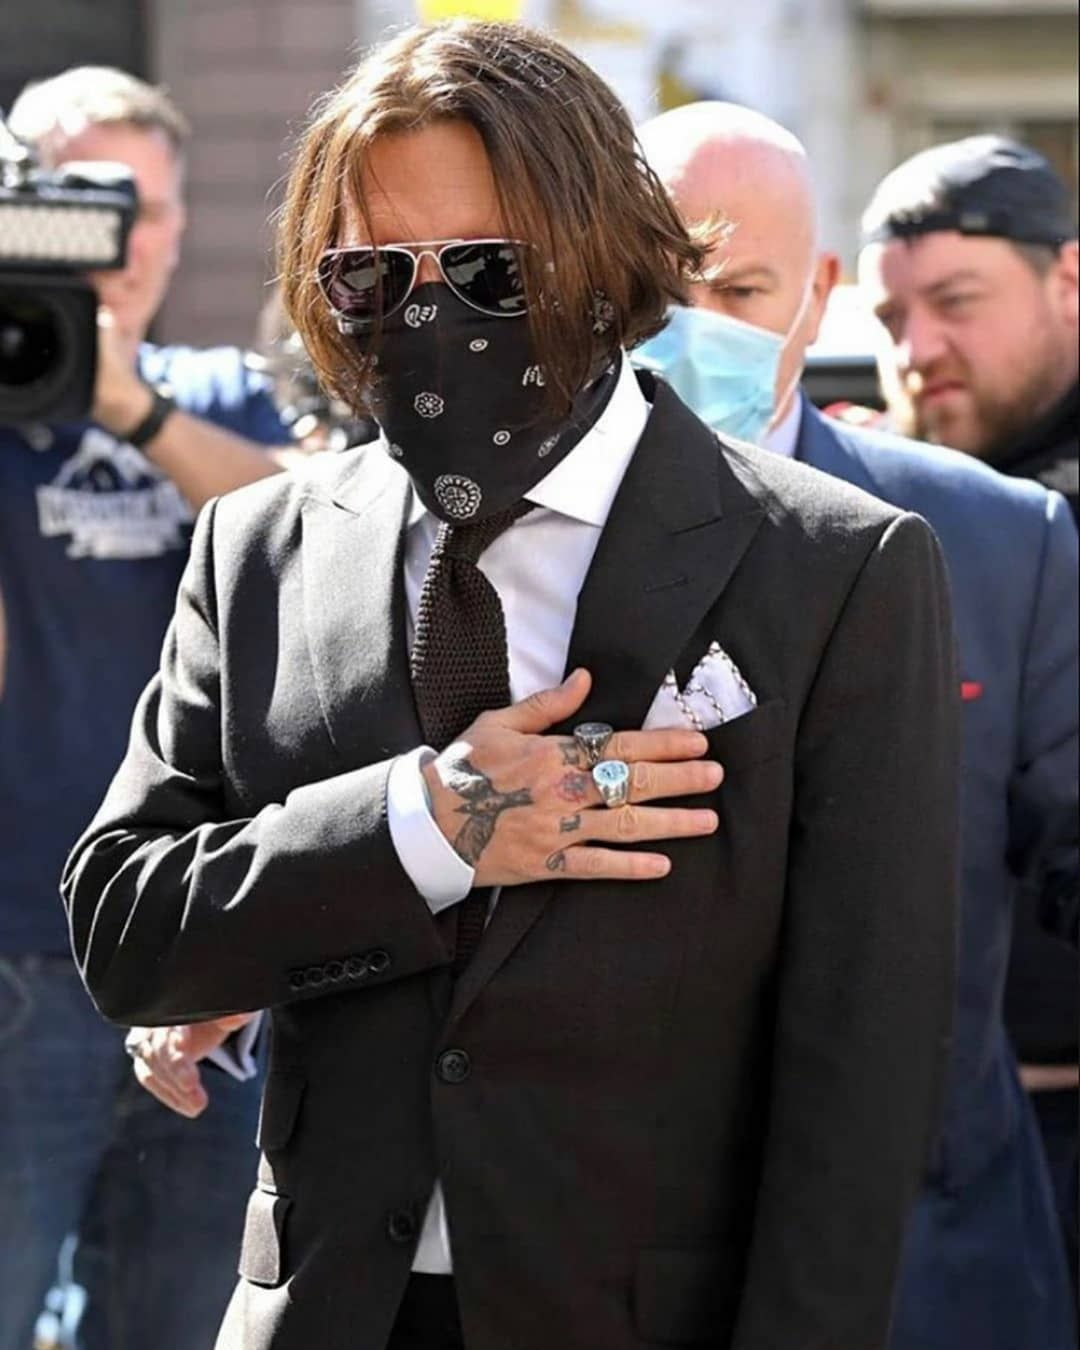 johnny depp portugal on instagram johnny depp at the royal courts of justice strand on july 10 2020 in london england johnny depp johnny jonny deep